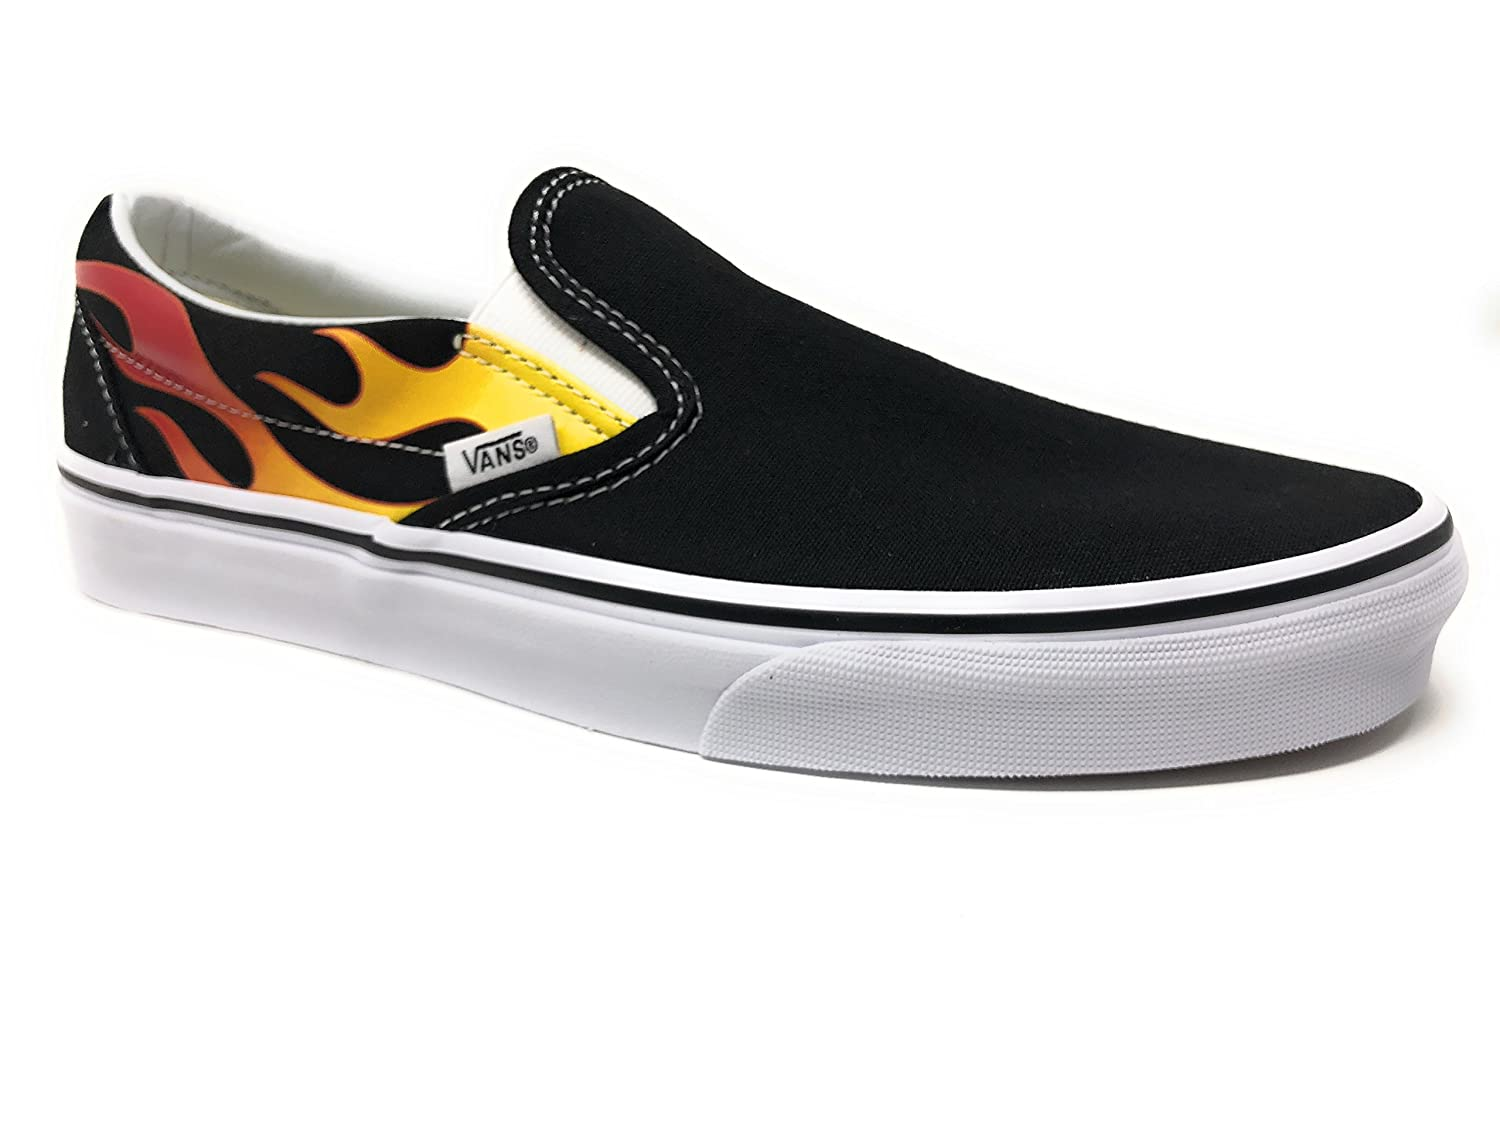 [バンズ] VANS スニーカー Classic Slip-on B01N4QCND8 7.5 B(M) US Women / 6 D(M) US Men Flame Black